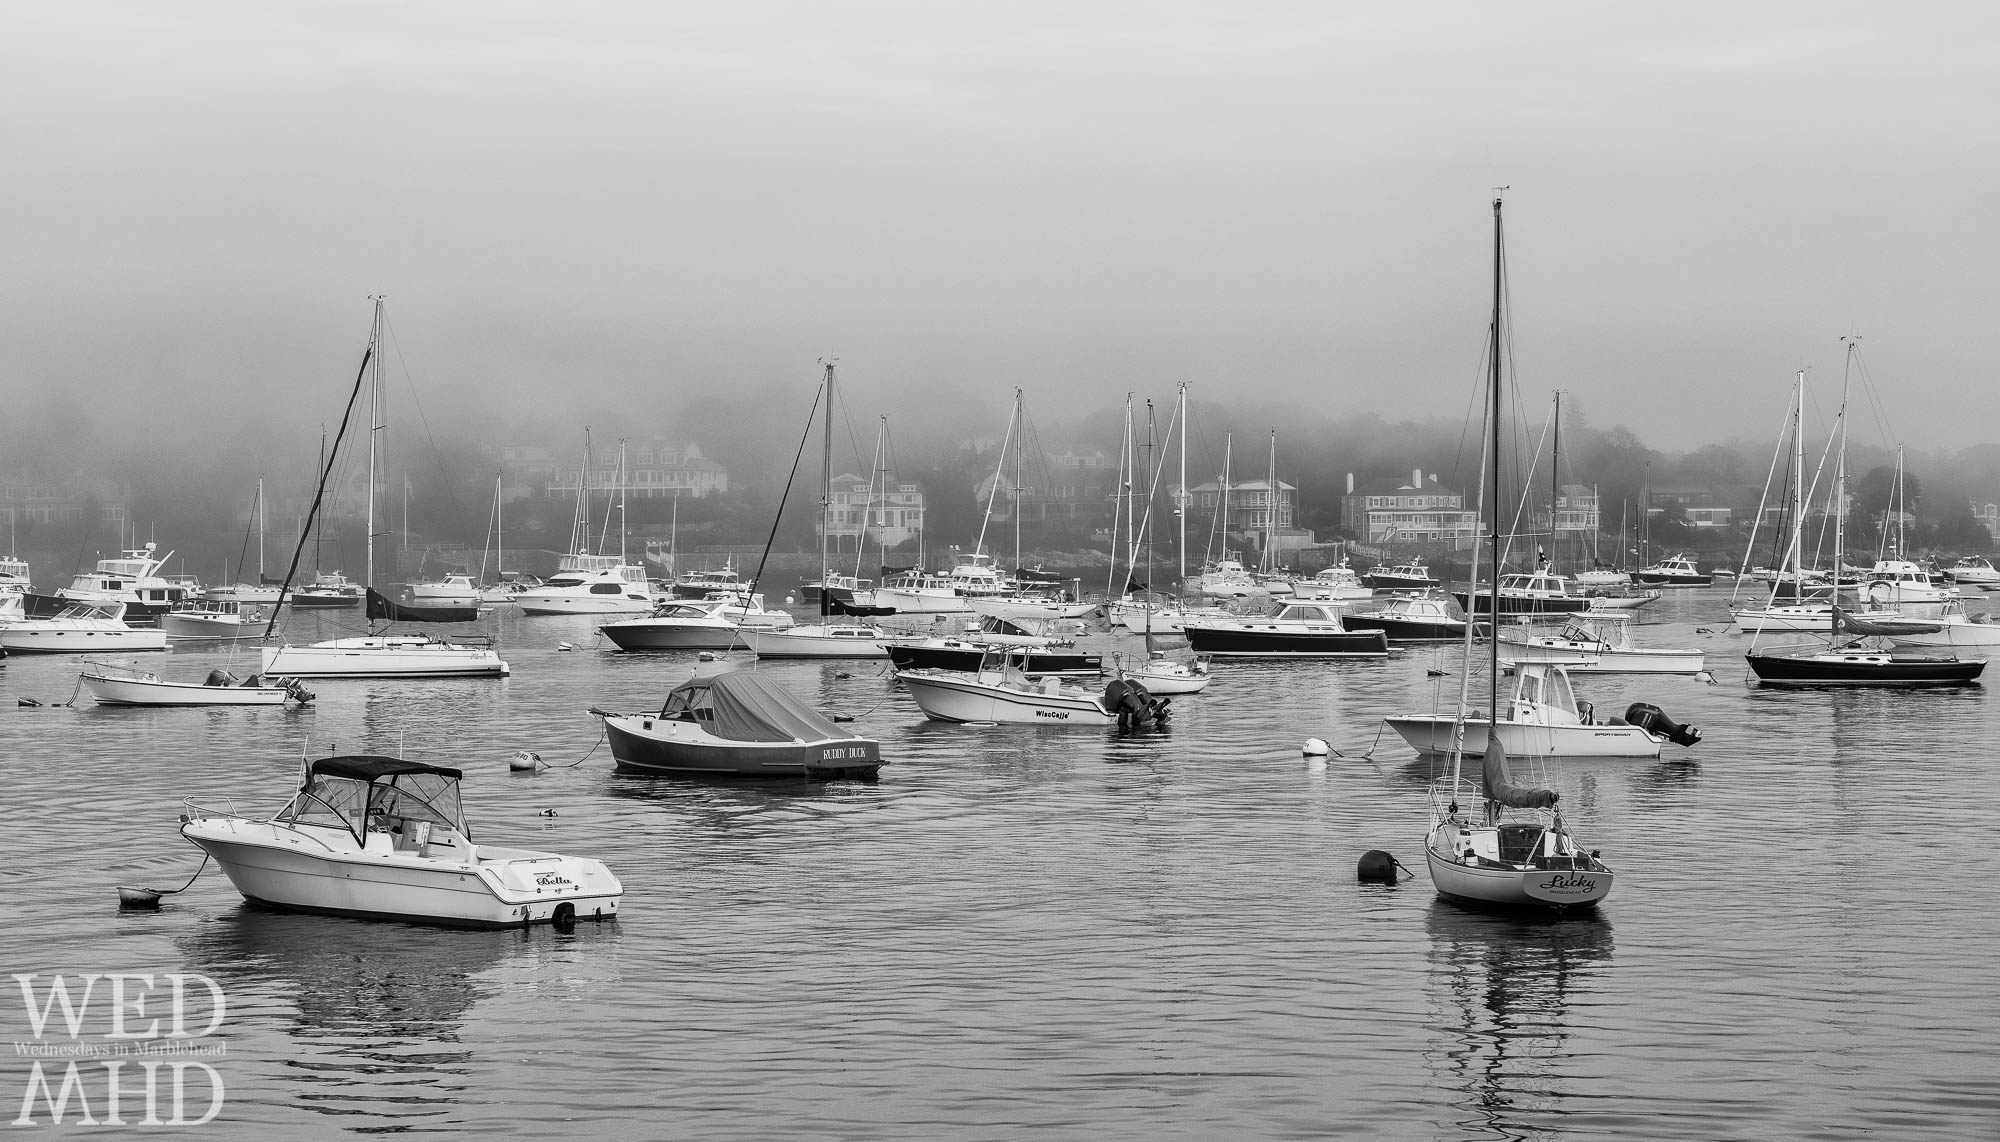 A black and white image capturing a foggy evening in Marblehead harbor featuring three boats - Lucky, Bella and Ruddy Duck